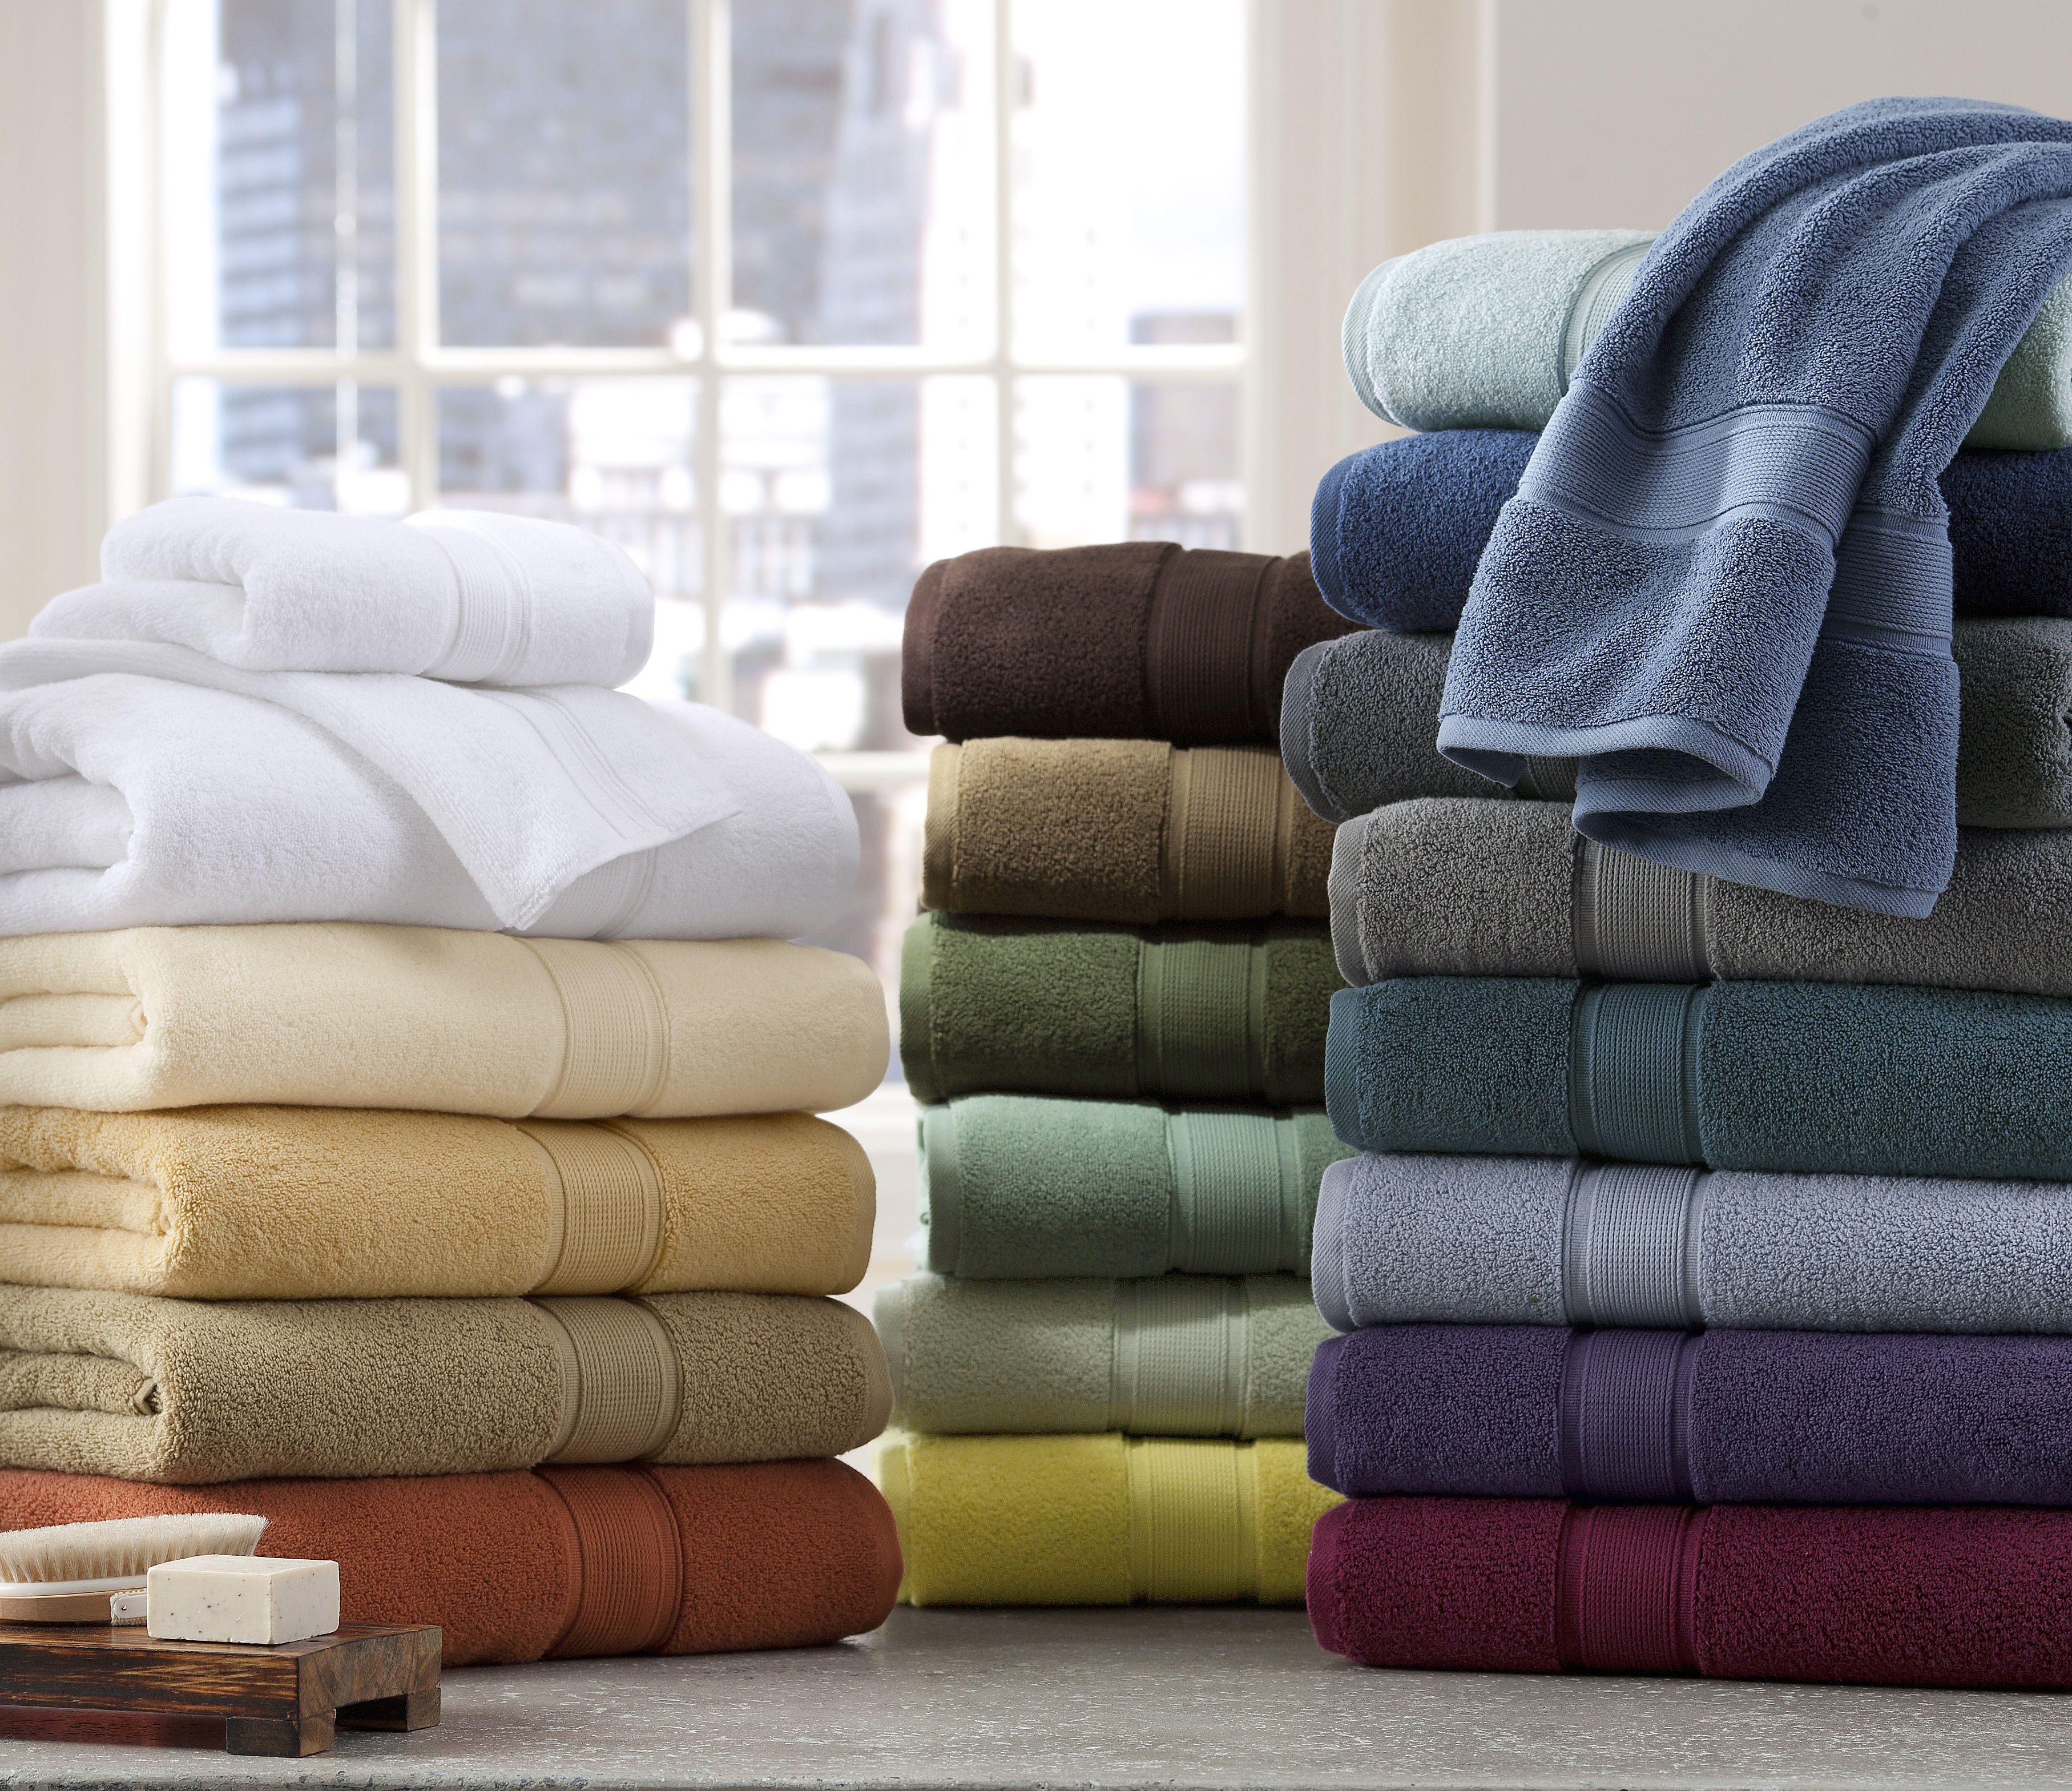 Kenneth Cole Reaction Home Towel Collection Towel Collection Towel Bathroom Towels Colors